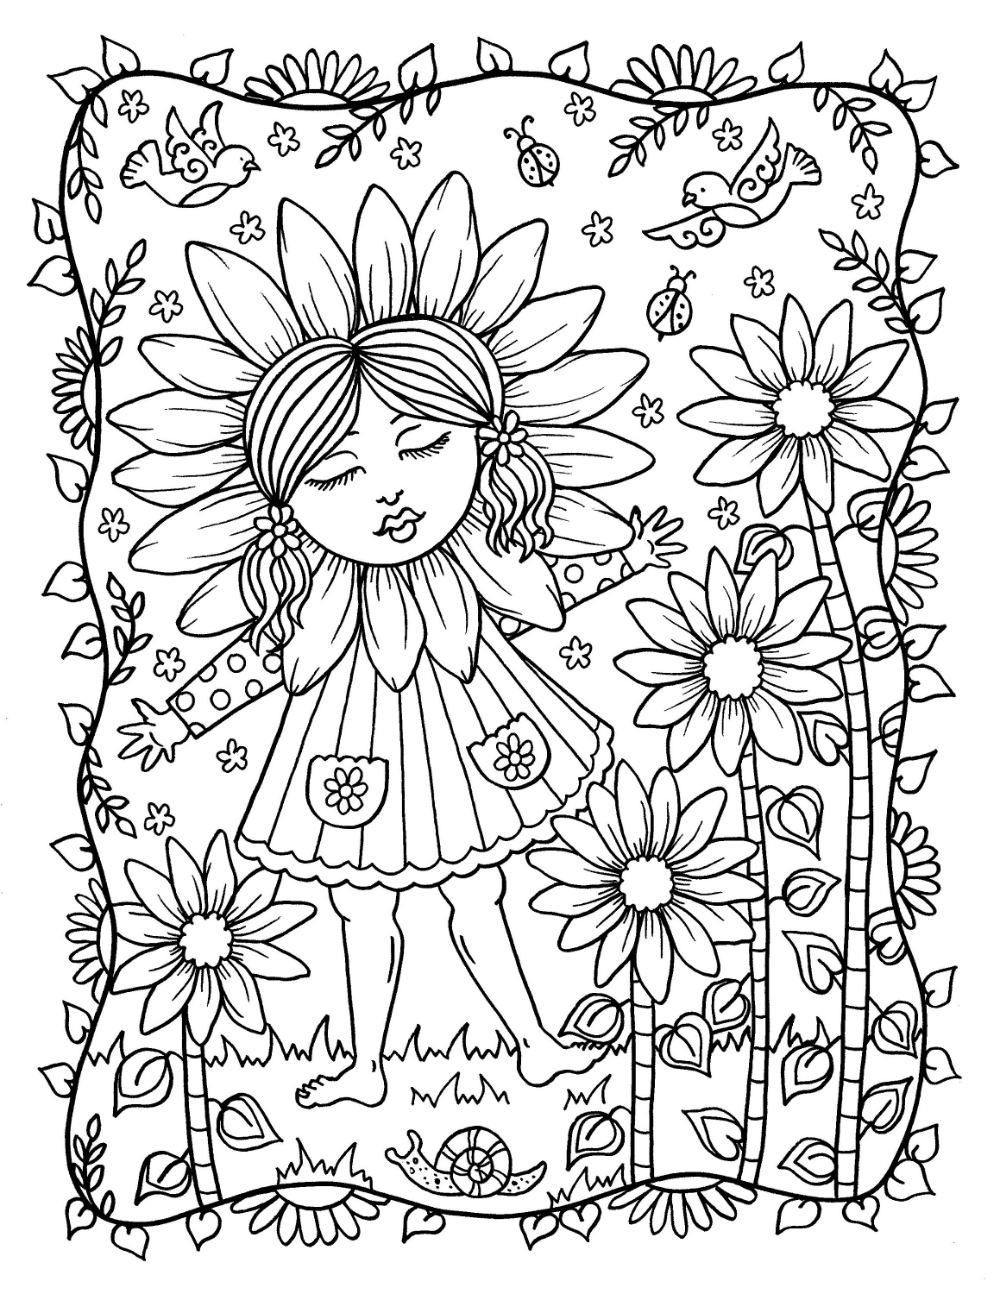 Springtime A Whimsical Coloring Adventure Digital Download Etsy Vintage Coloring Books Coloring Books Fathers Day Crafts